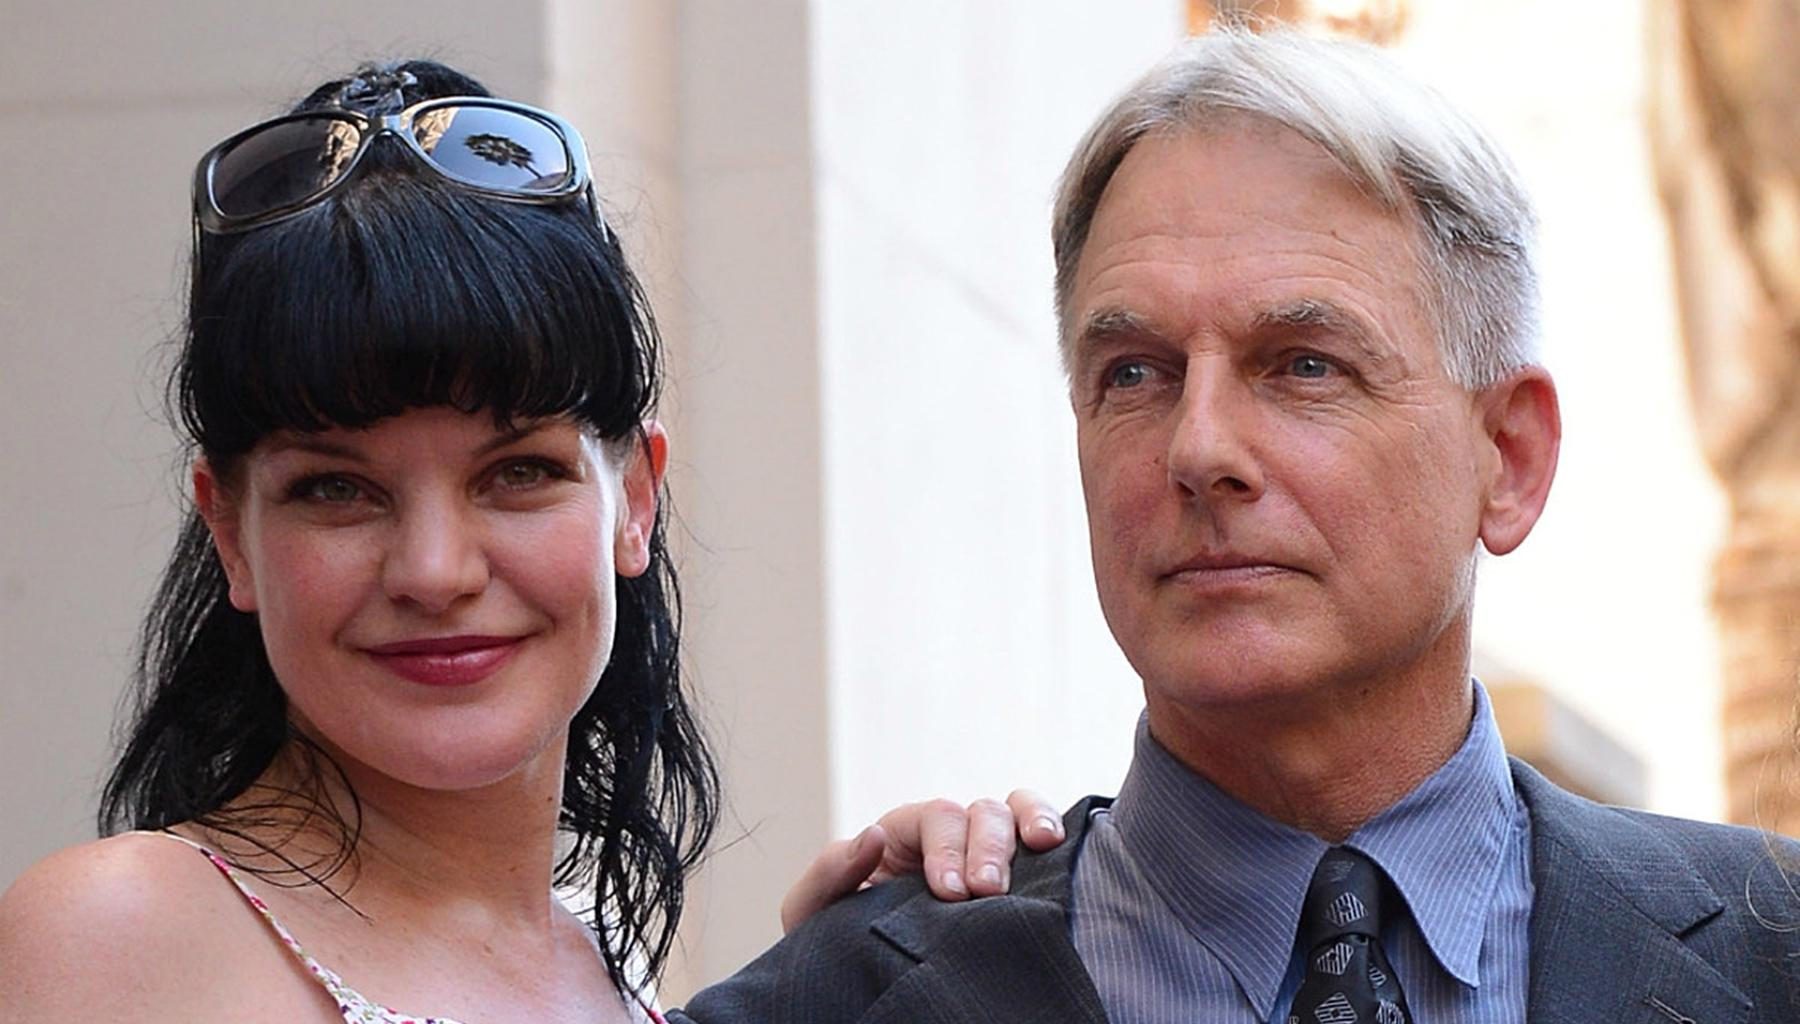 Pauley Perrette's Concerns About Mark Harmon Have Been Resolved Which Is Why She Accepted To Come Back To CBS As Some 'NCIS' Fans Remain Divided Over The Incident That Started It All